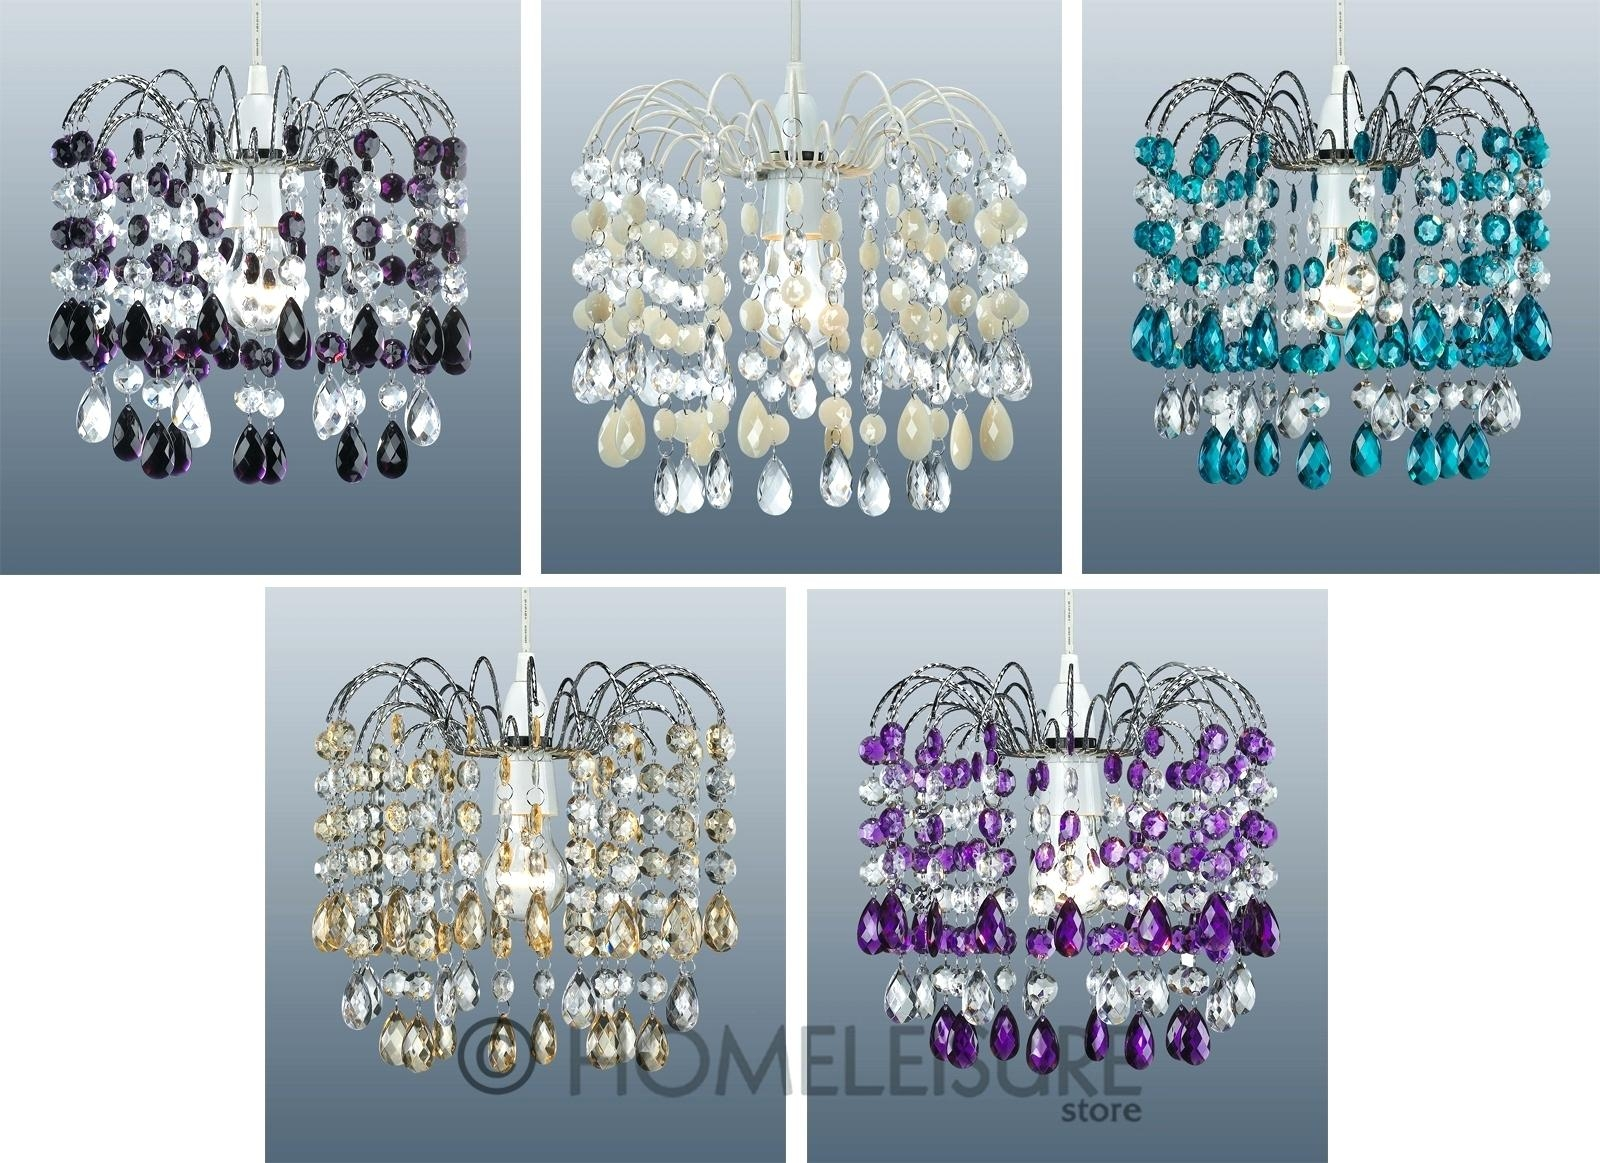 Austrian Crystal Chandelier Cascade 32 Acrylic Crystal Droplet Intended For Purple Crystal Chandelier Lights (Image 5 of 25)